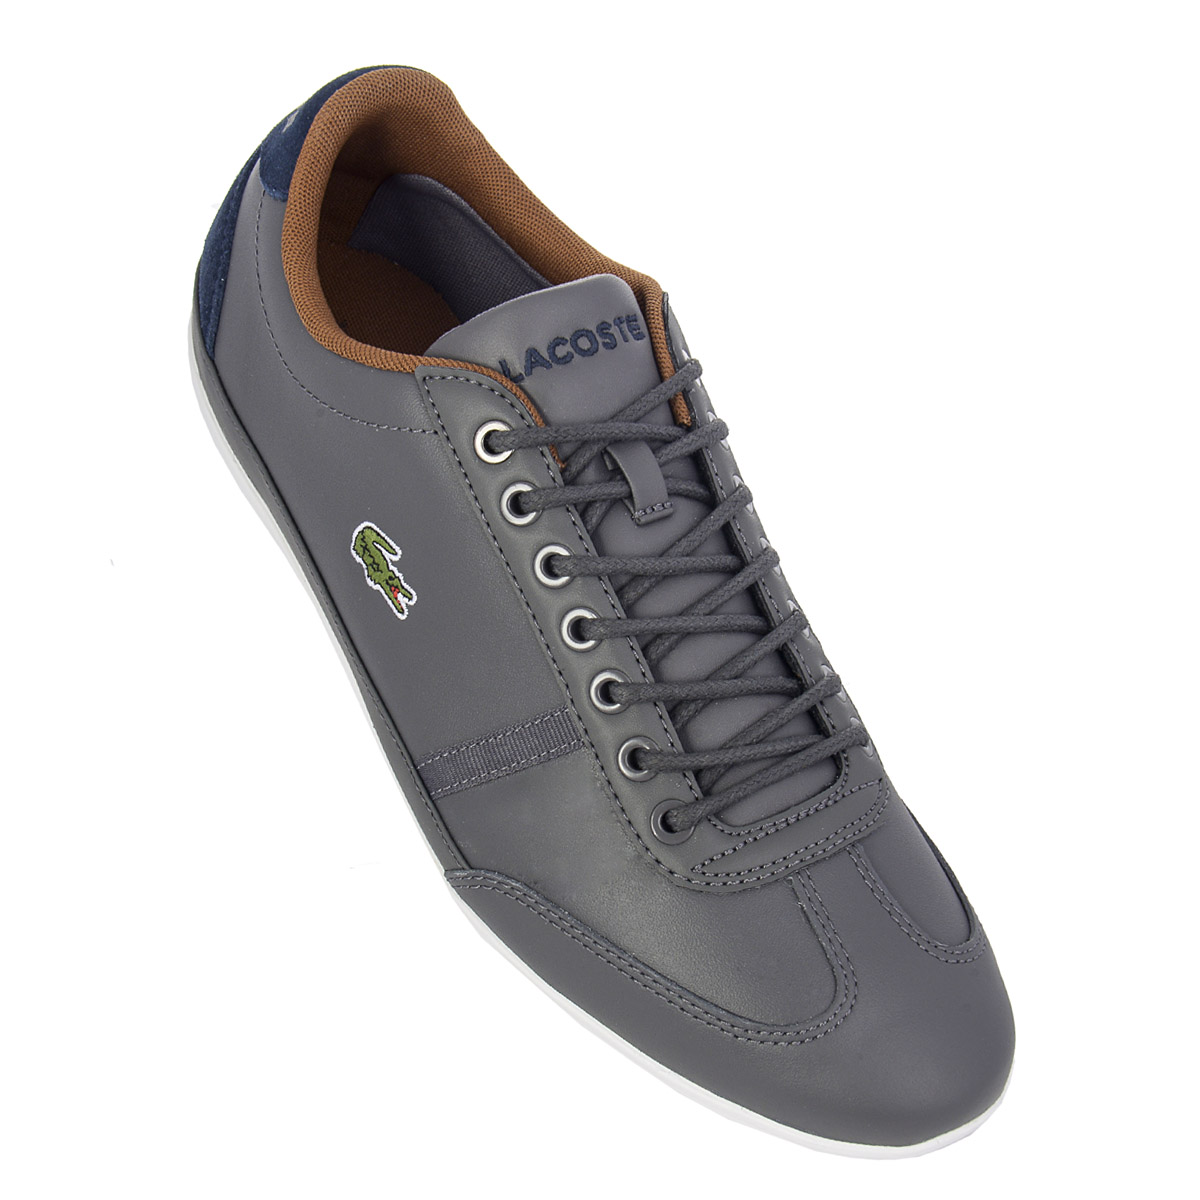 Lacoste Schuhe Details Zu New Lacoste Misano Sport Cam0046248 Mens Shoes Trainers Sneakers Sale